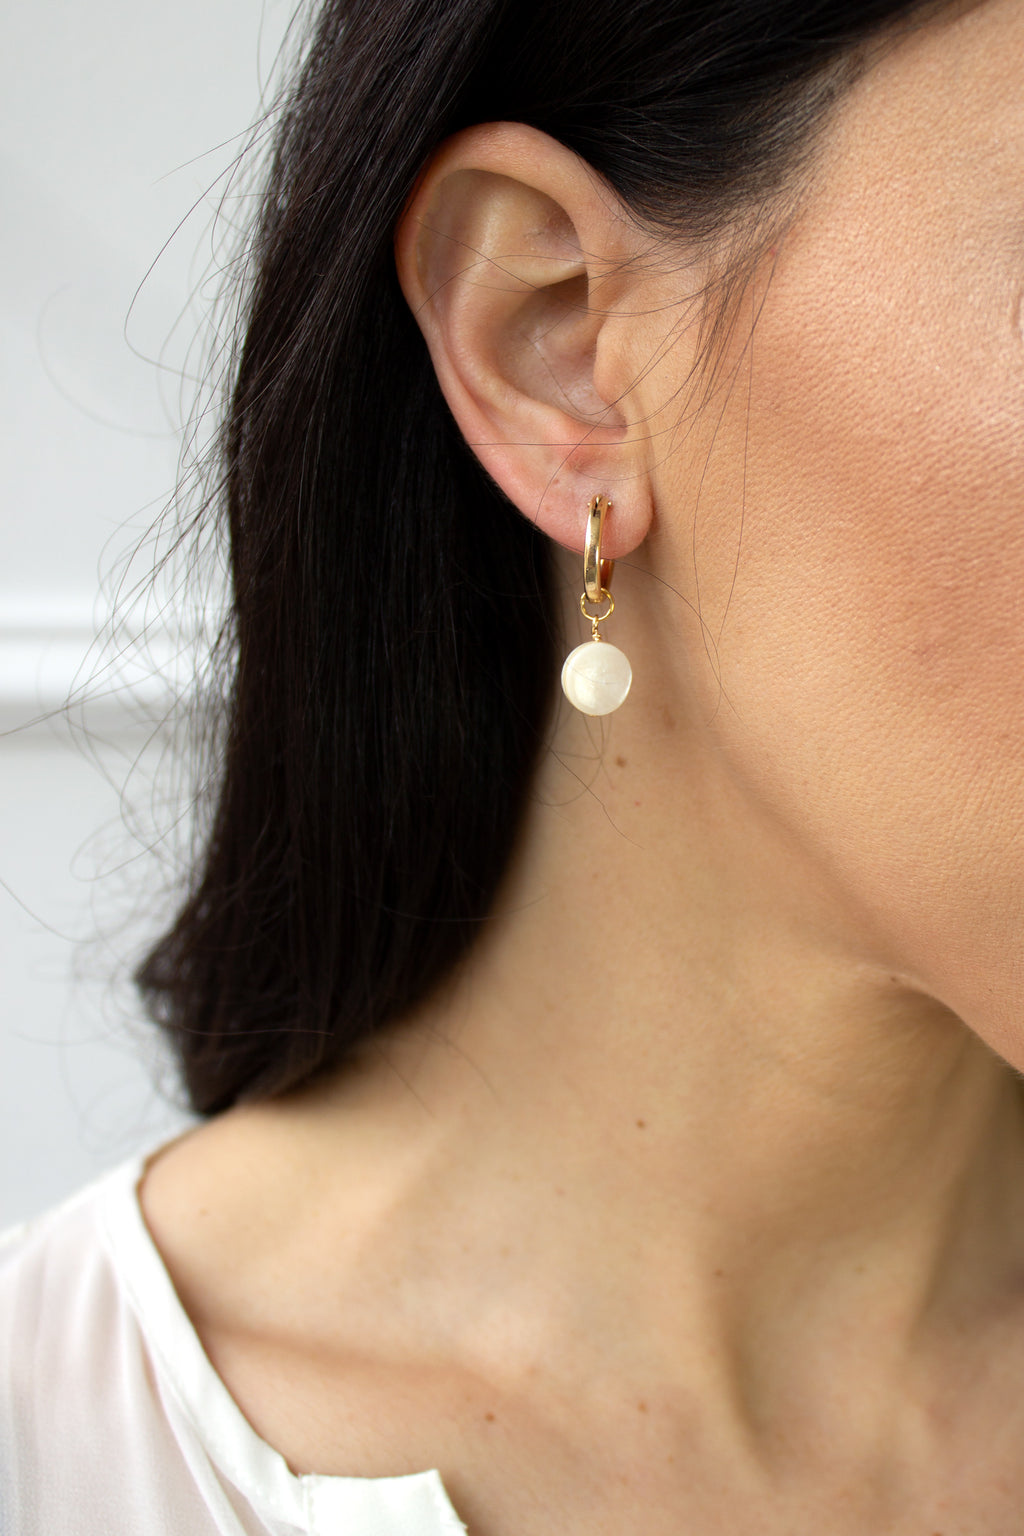 Mini Hoop Earrings - Mother of Pearl - Christine Elizabeth Jewelry